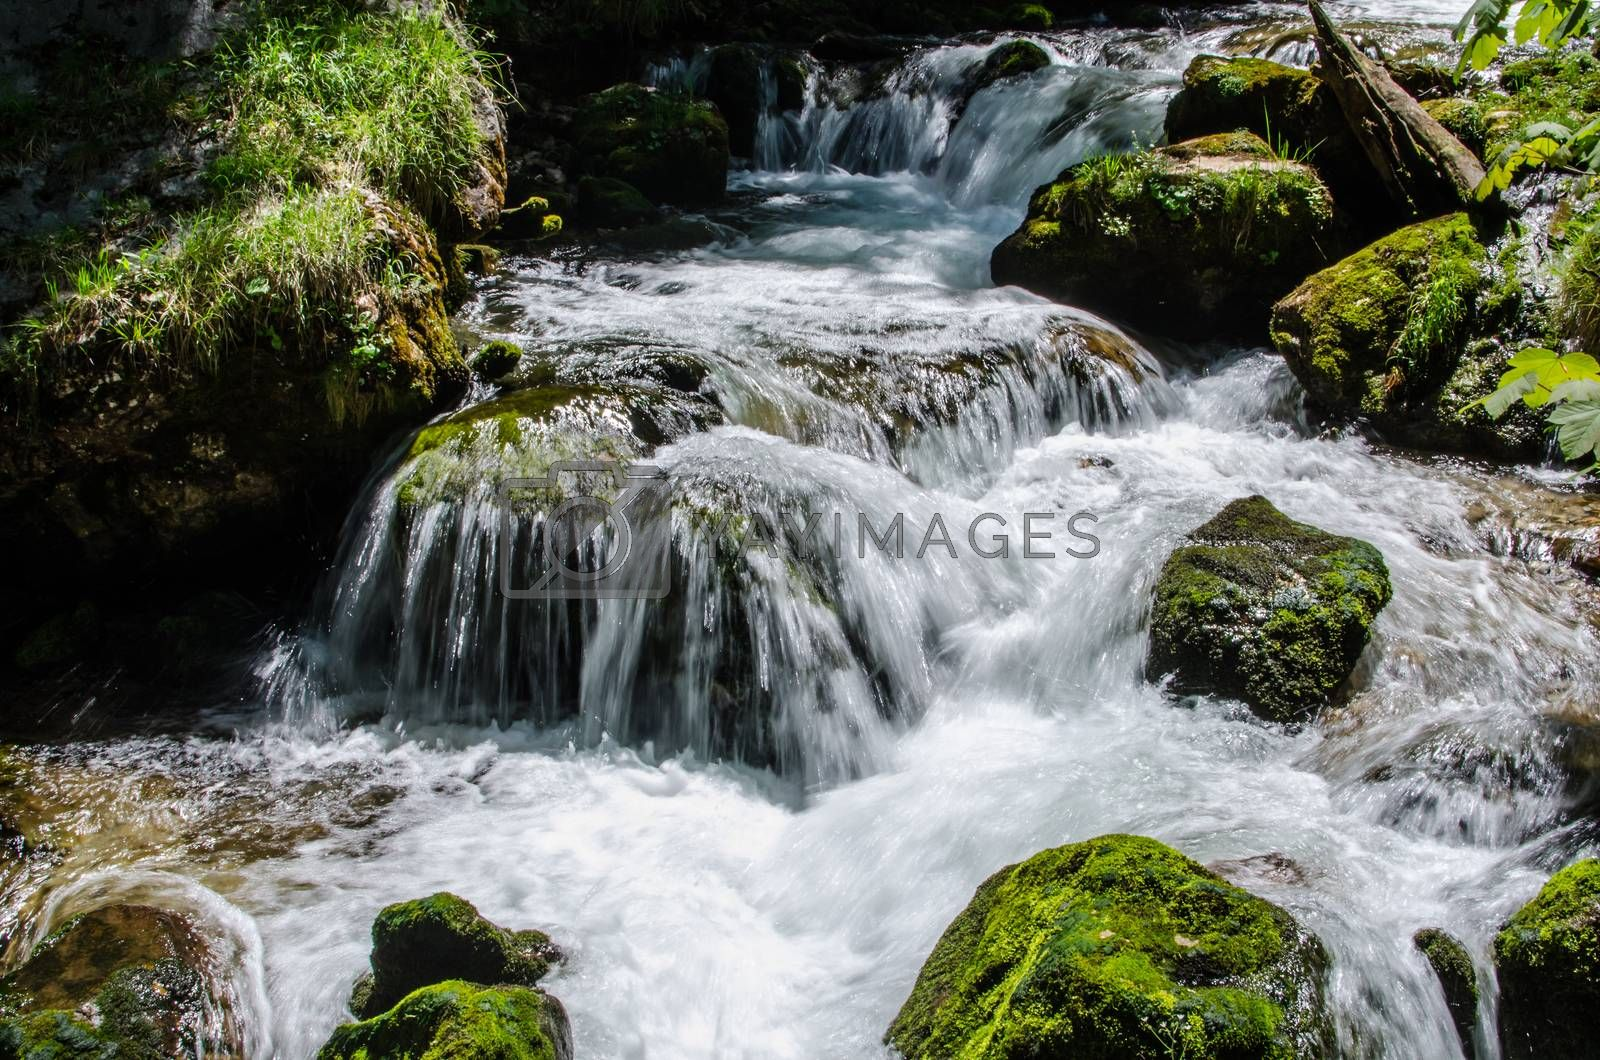 Royalty free image of water and rocks in the brook by thomaseder